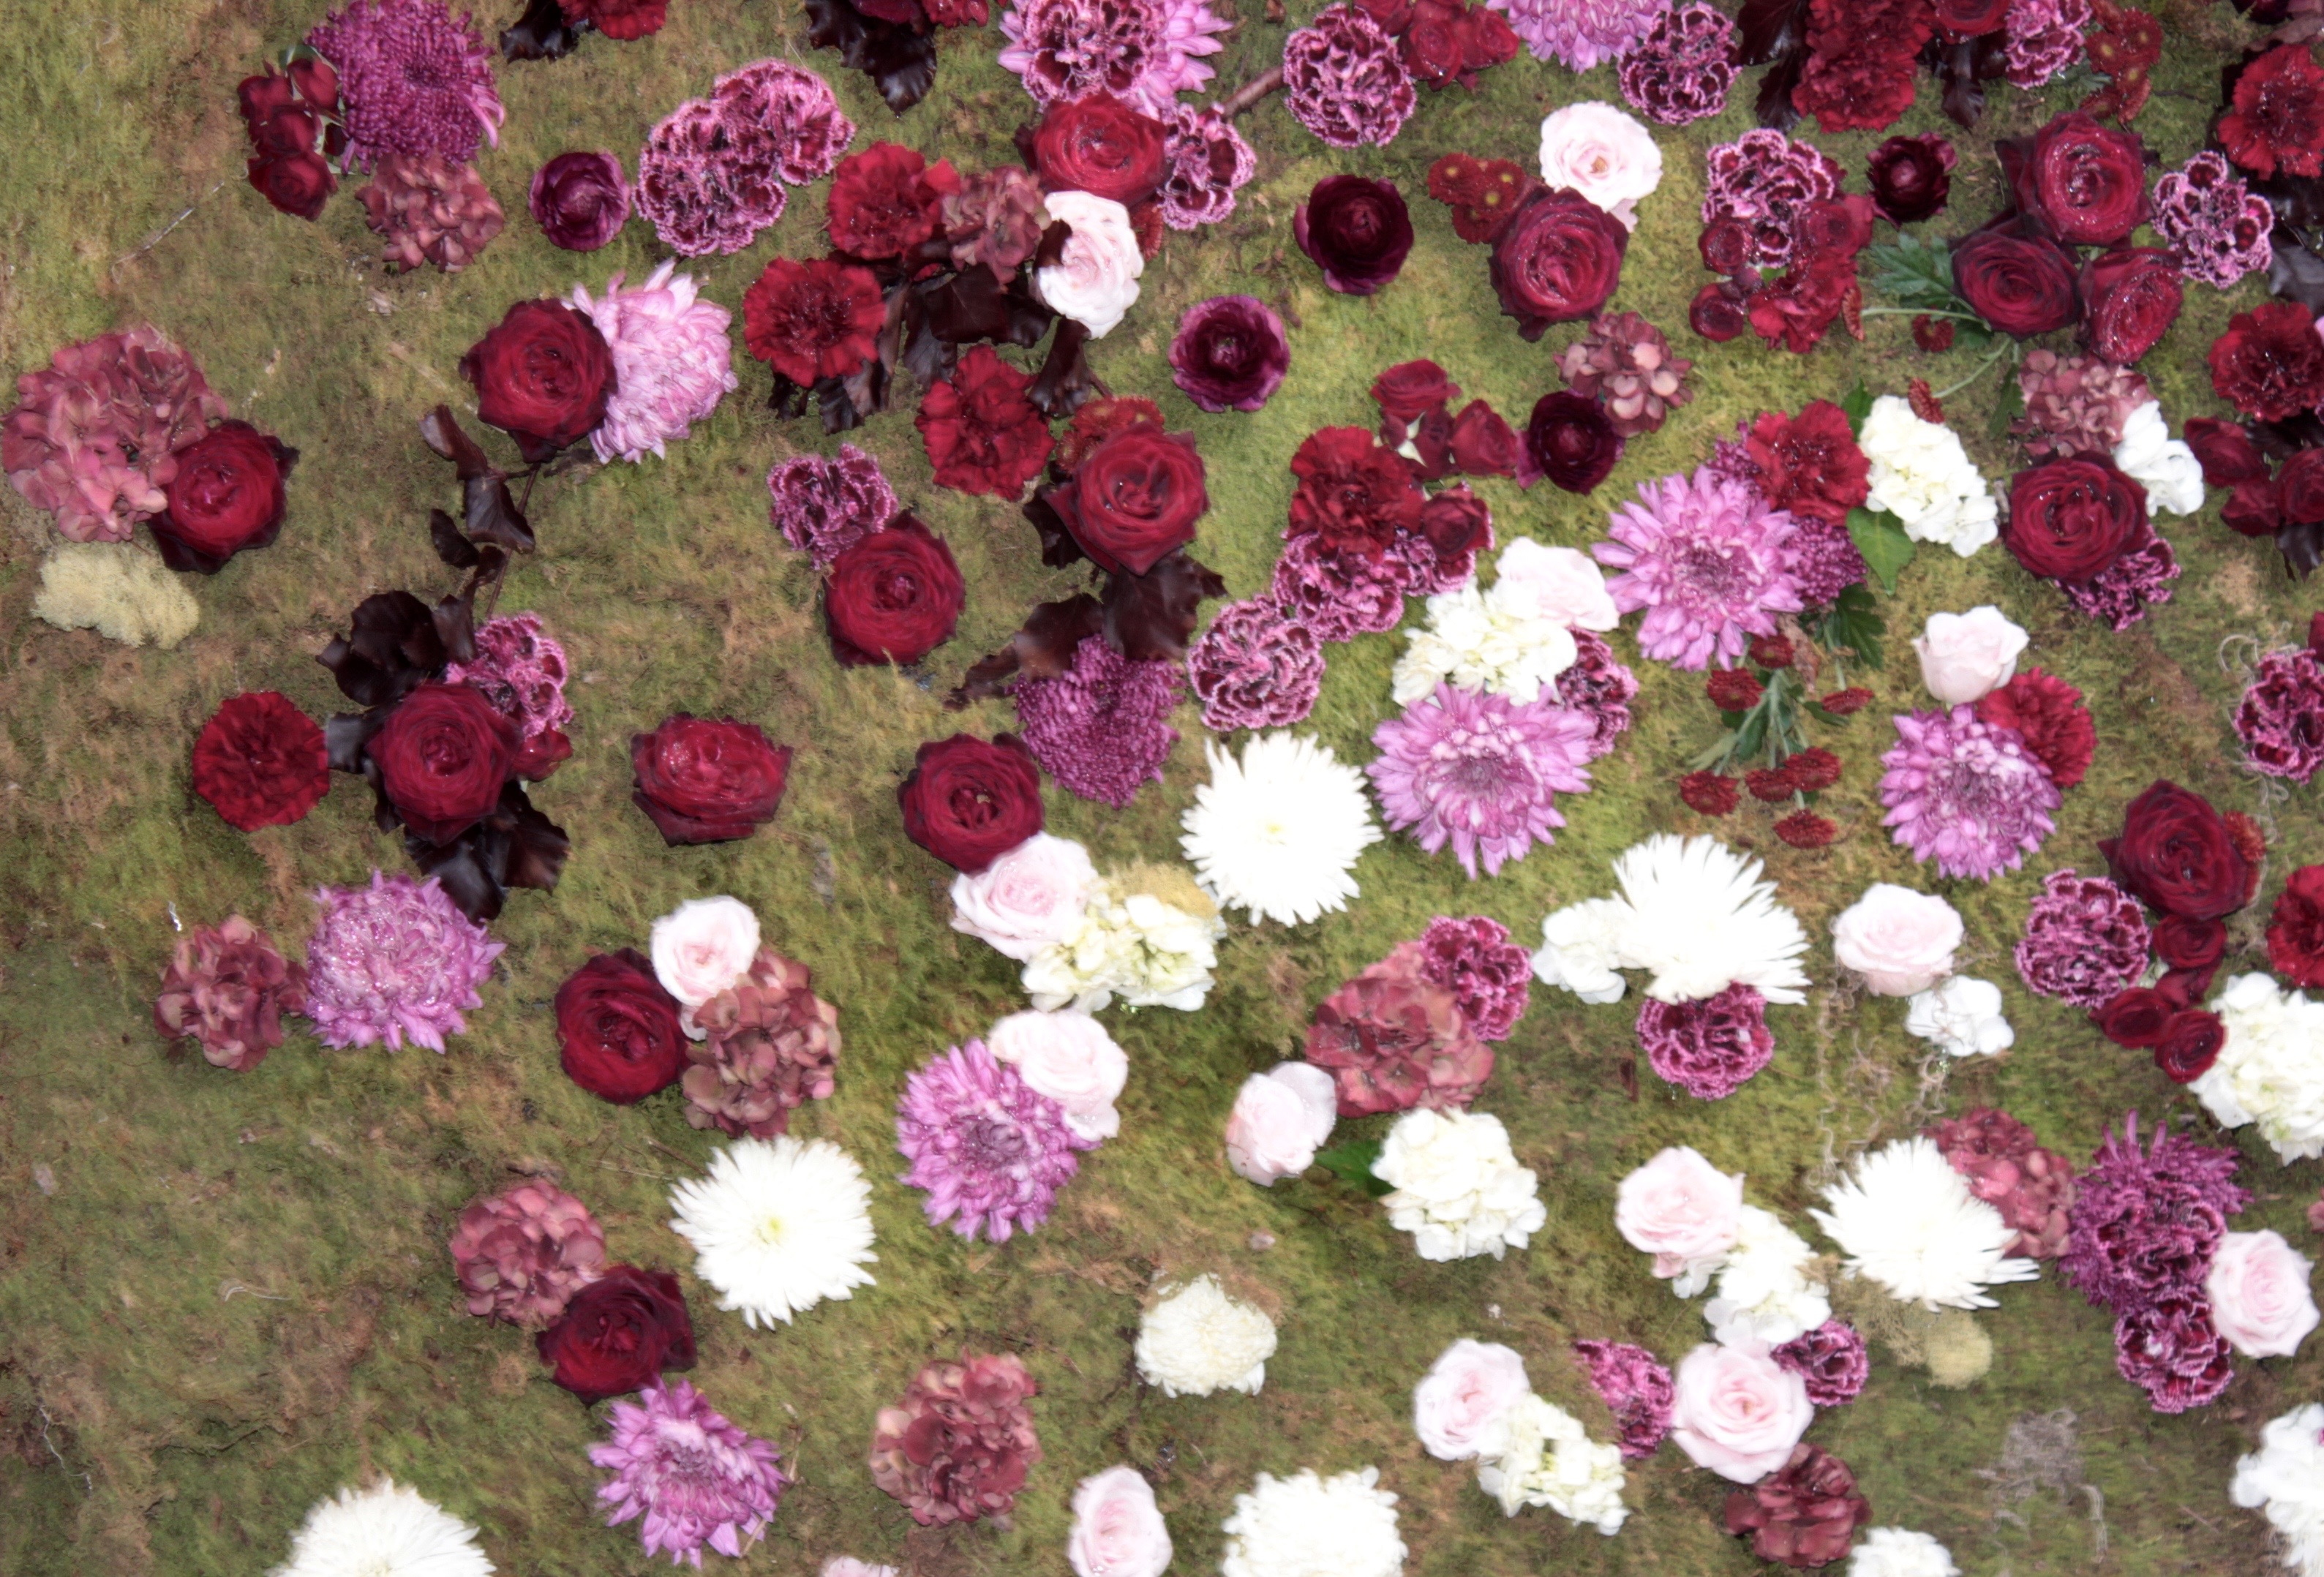 These pictures of Alison's flower wall don't do it justice